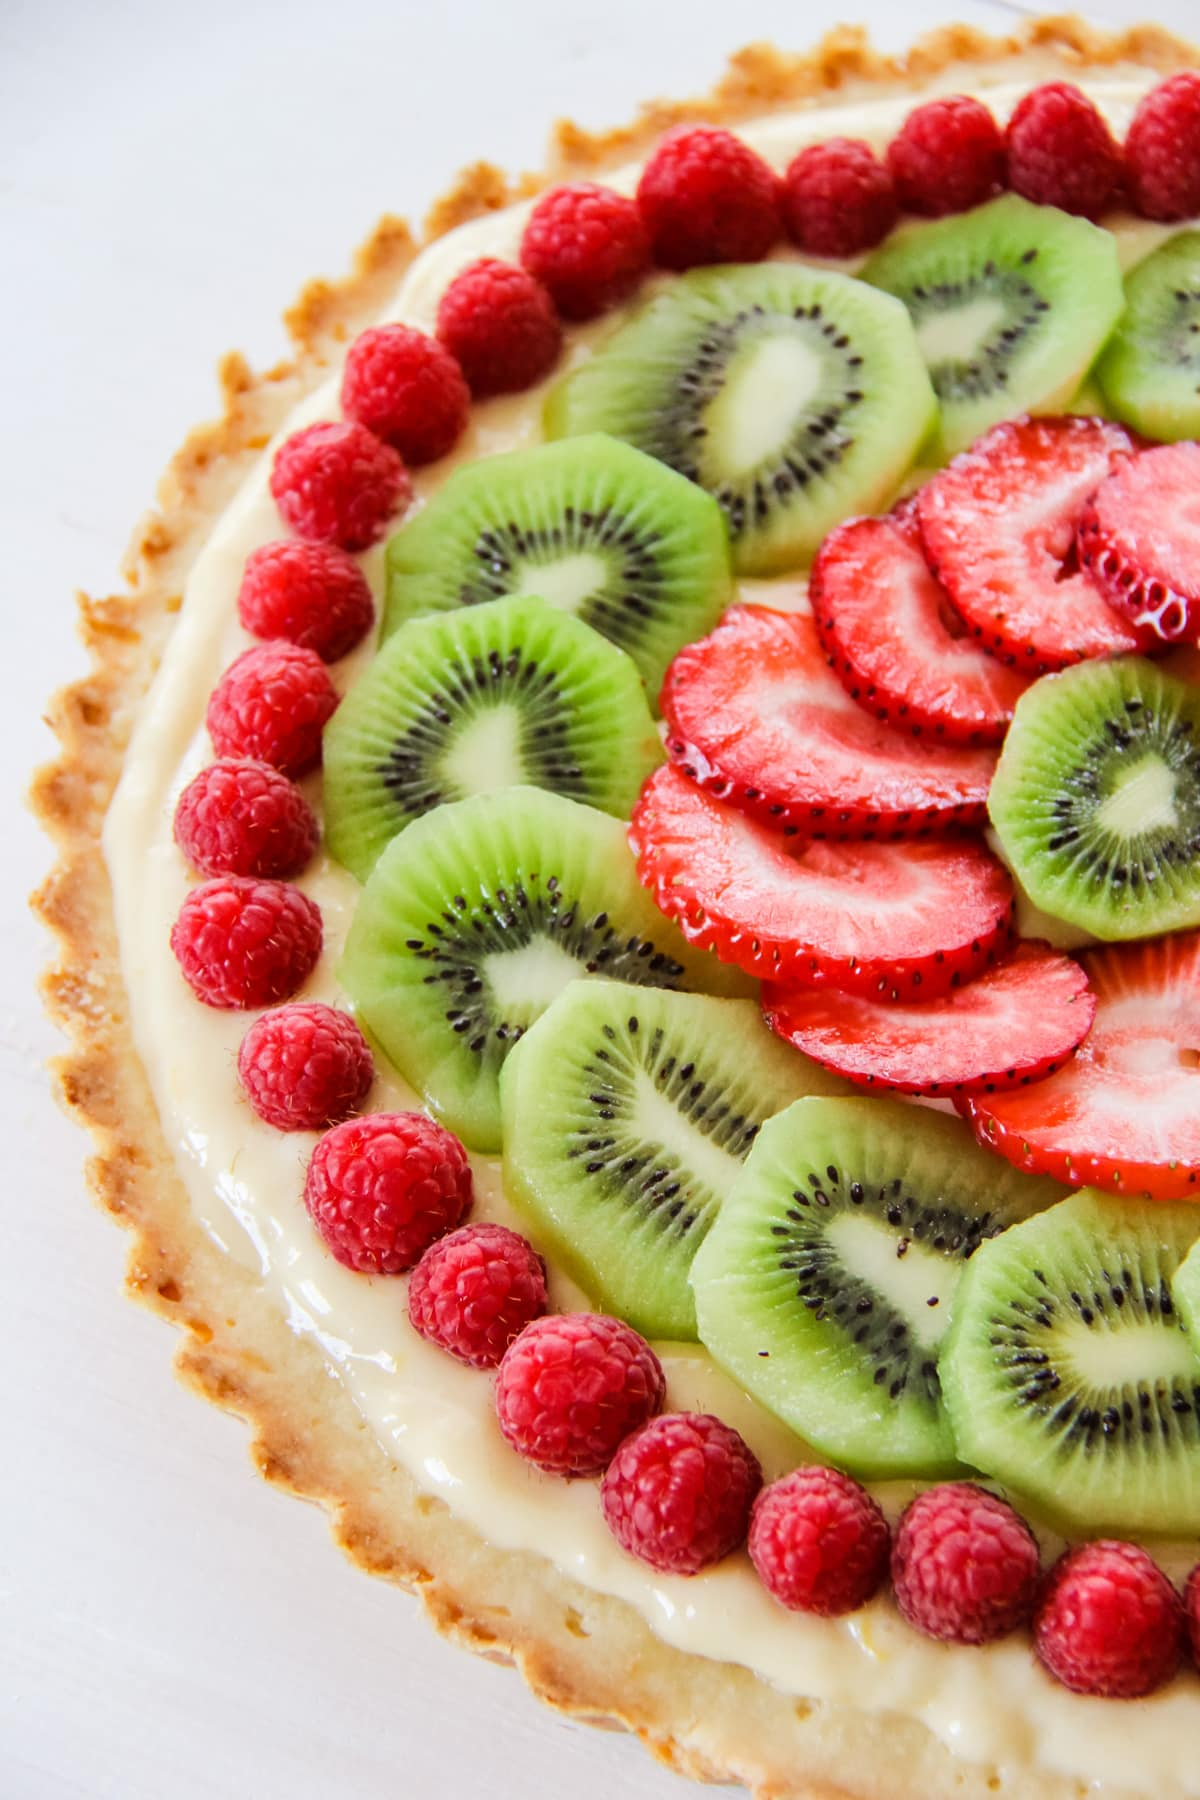 Lemon Cream Fruit Tart with a Shortbread Cookie Crust